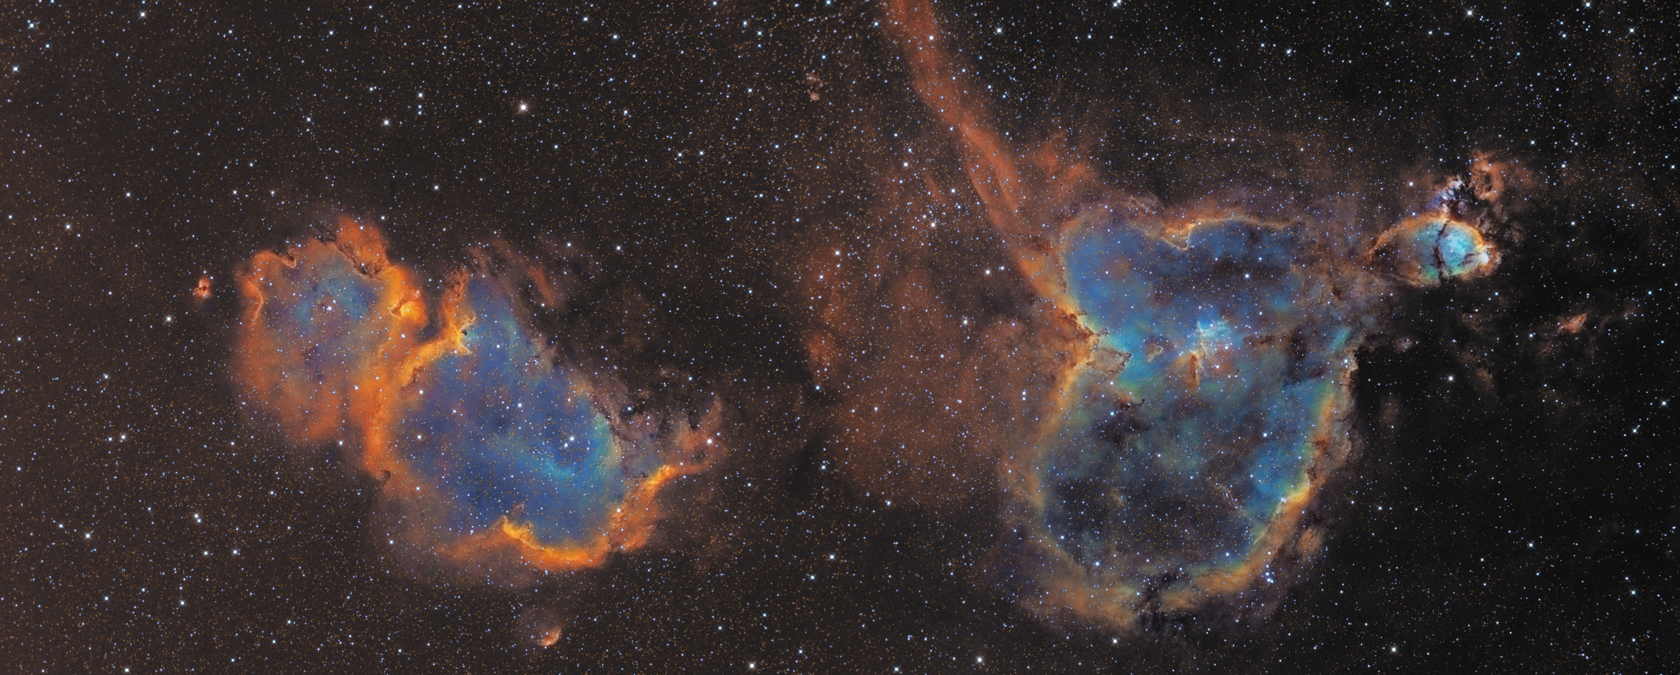 Heart and Soul Nebula Documentary - Pics about space